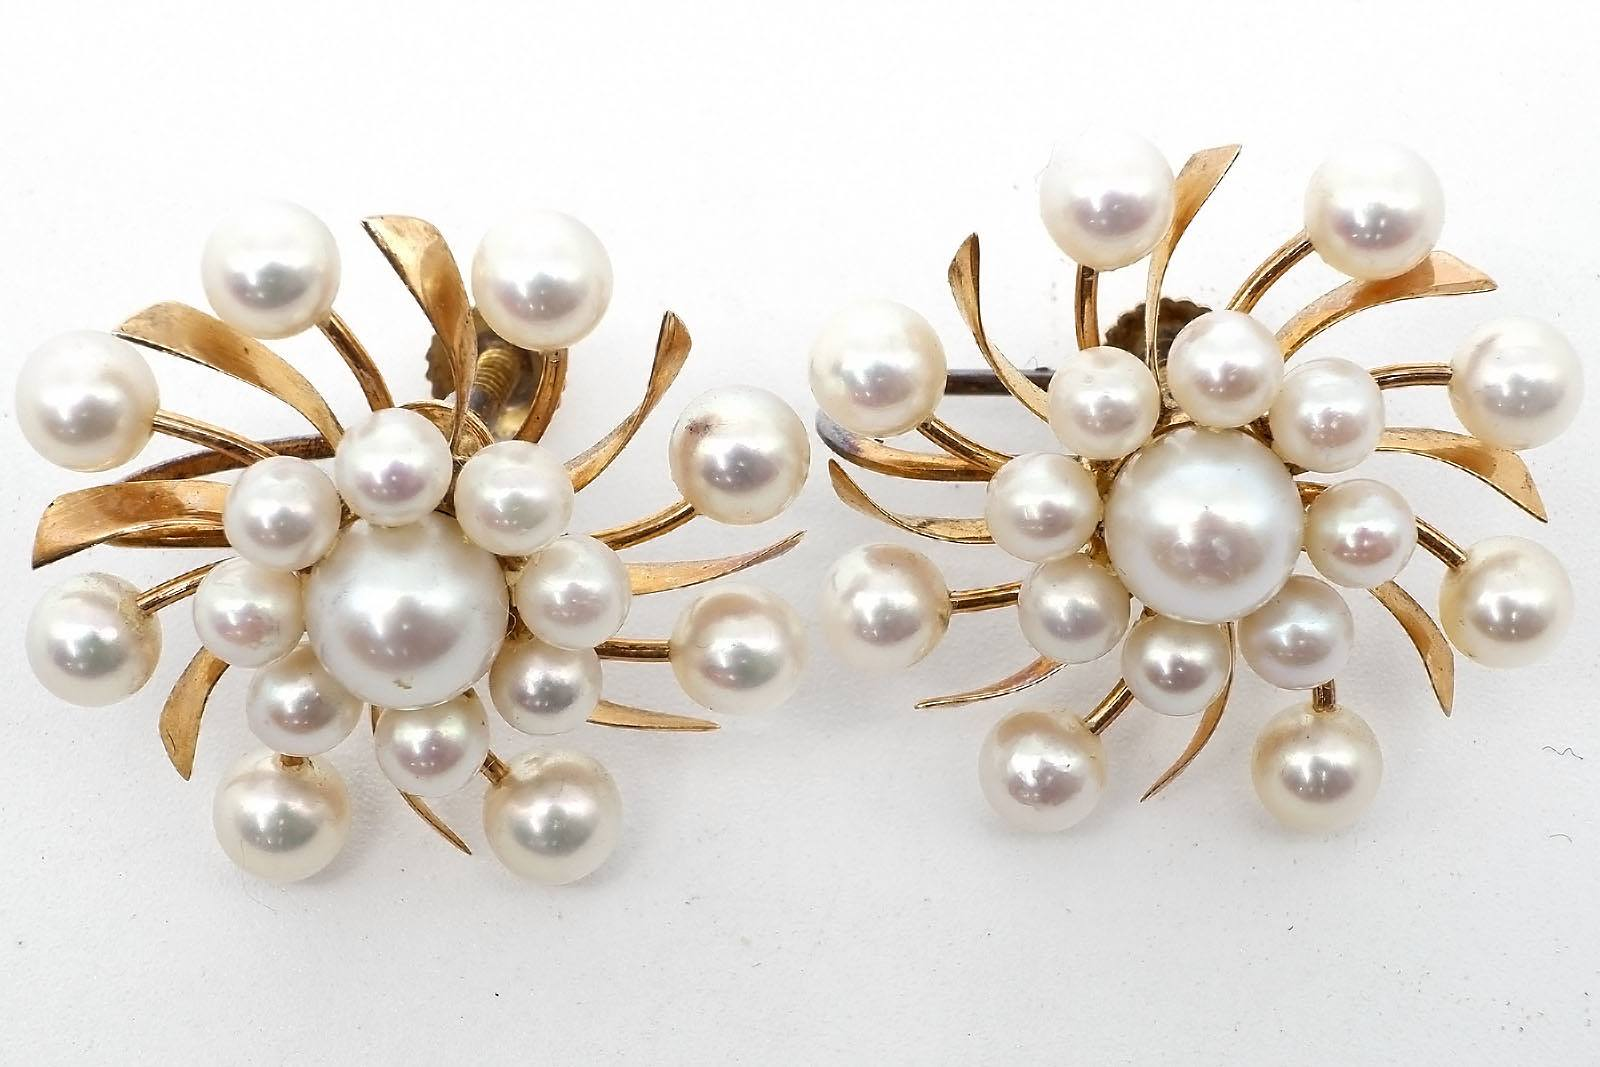 '14ct Yellow Gold Cultured Pearl Screw on Earrings, Each with Seventeen White with High Lustre Pearls, 7.1g'